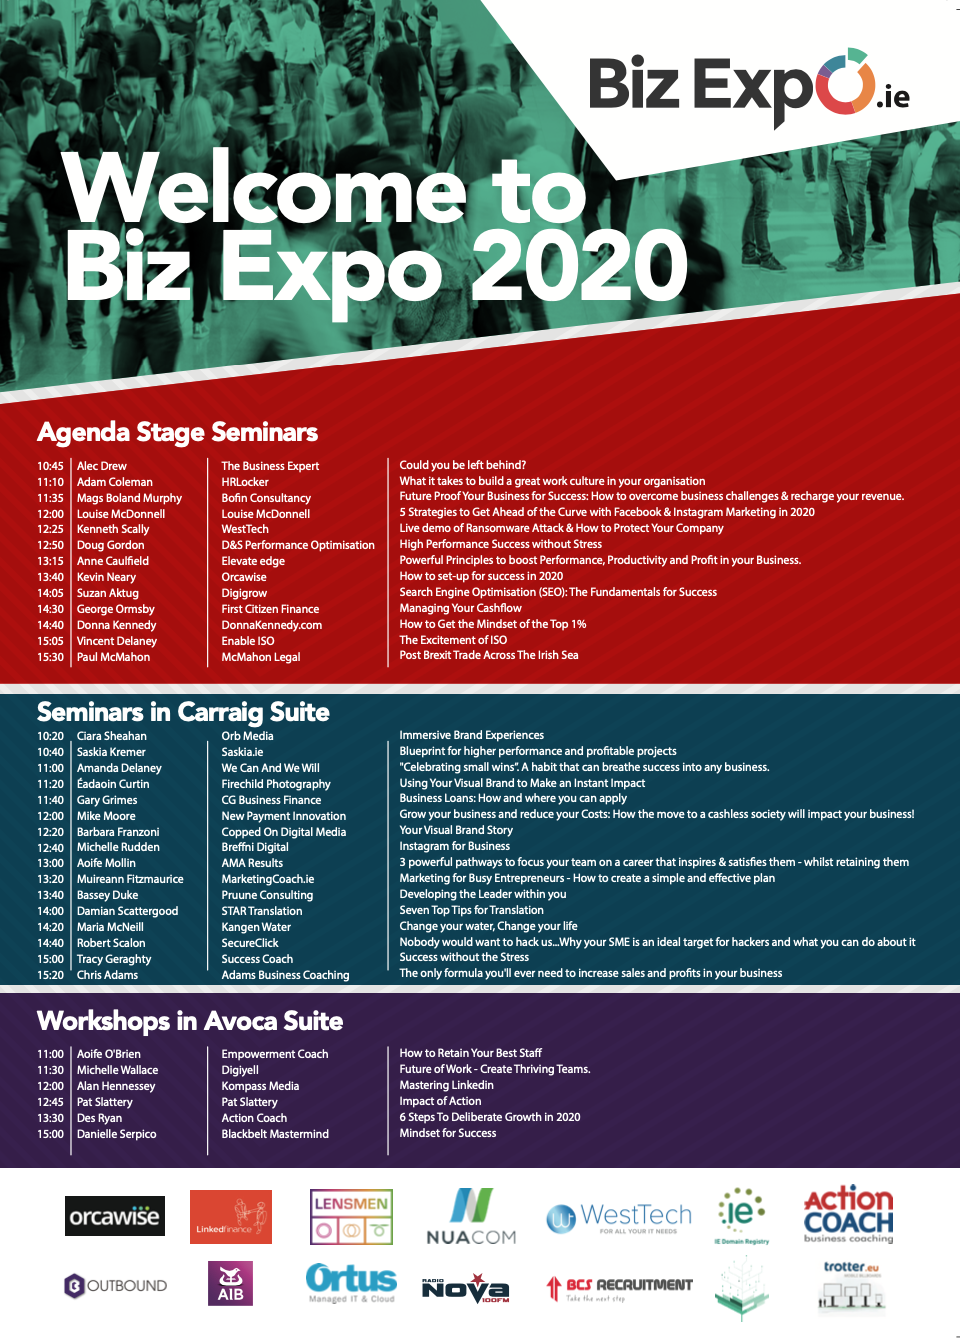 https://www.bizexpo.ie/wp-content/uploads/2020/02/Screenshot-2020-02-16-at-17.15.27.png